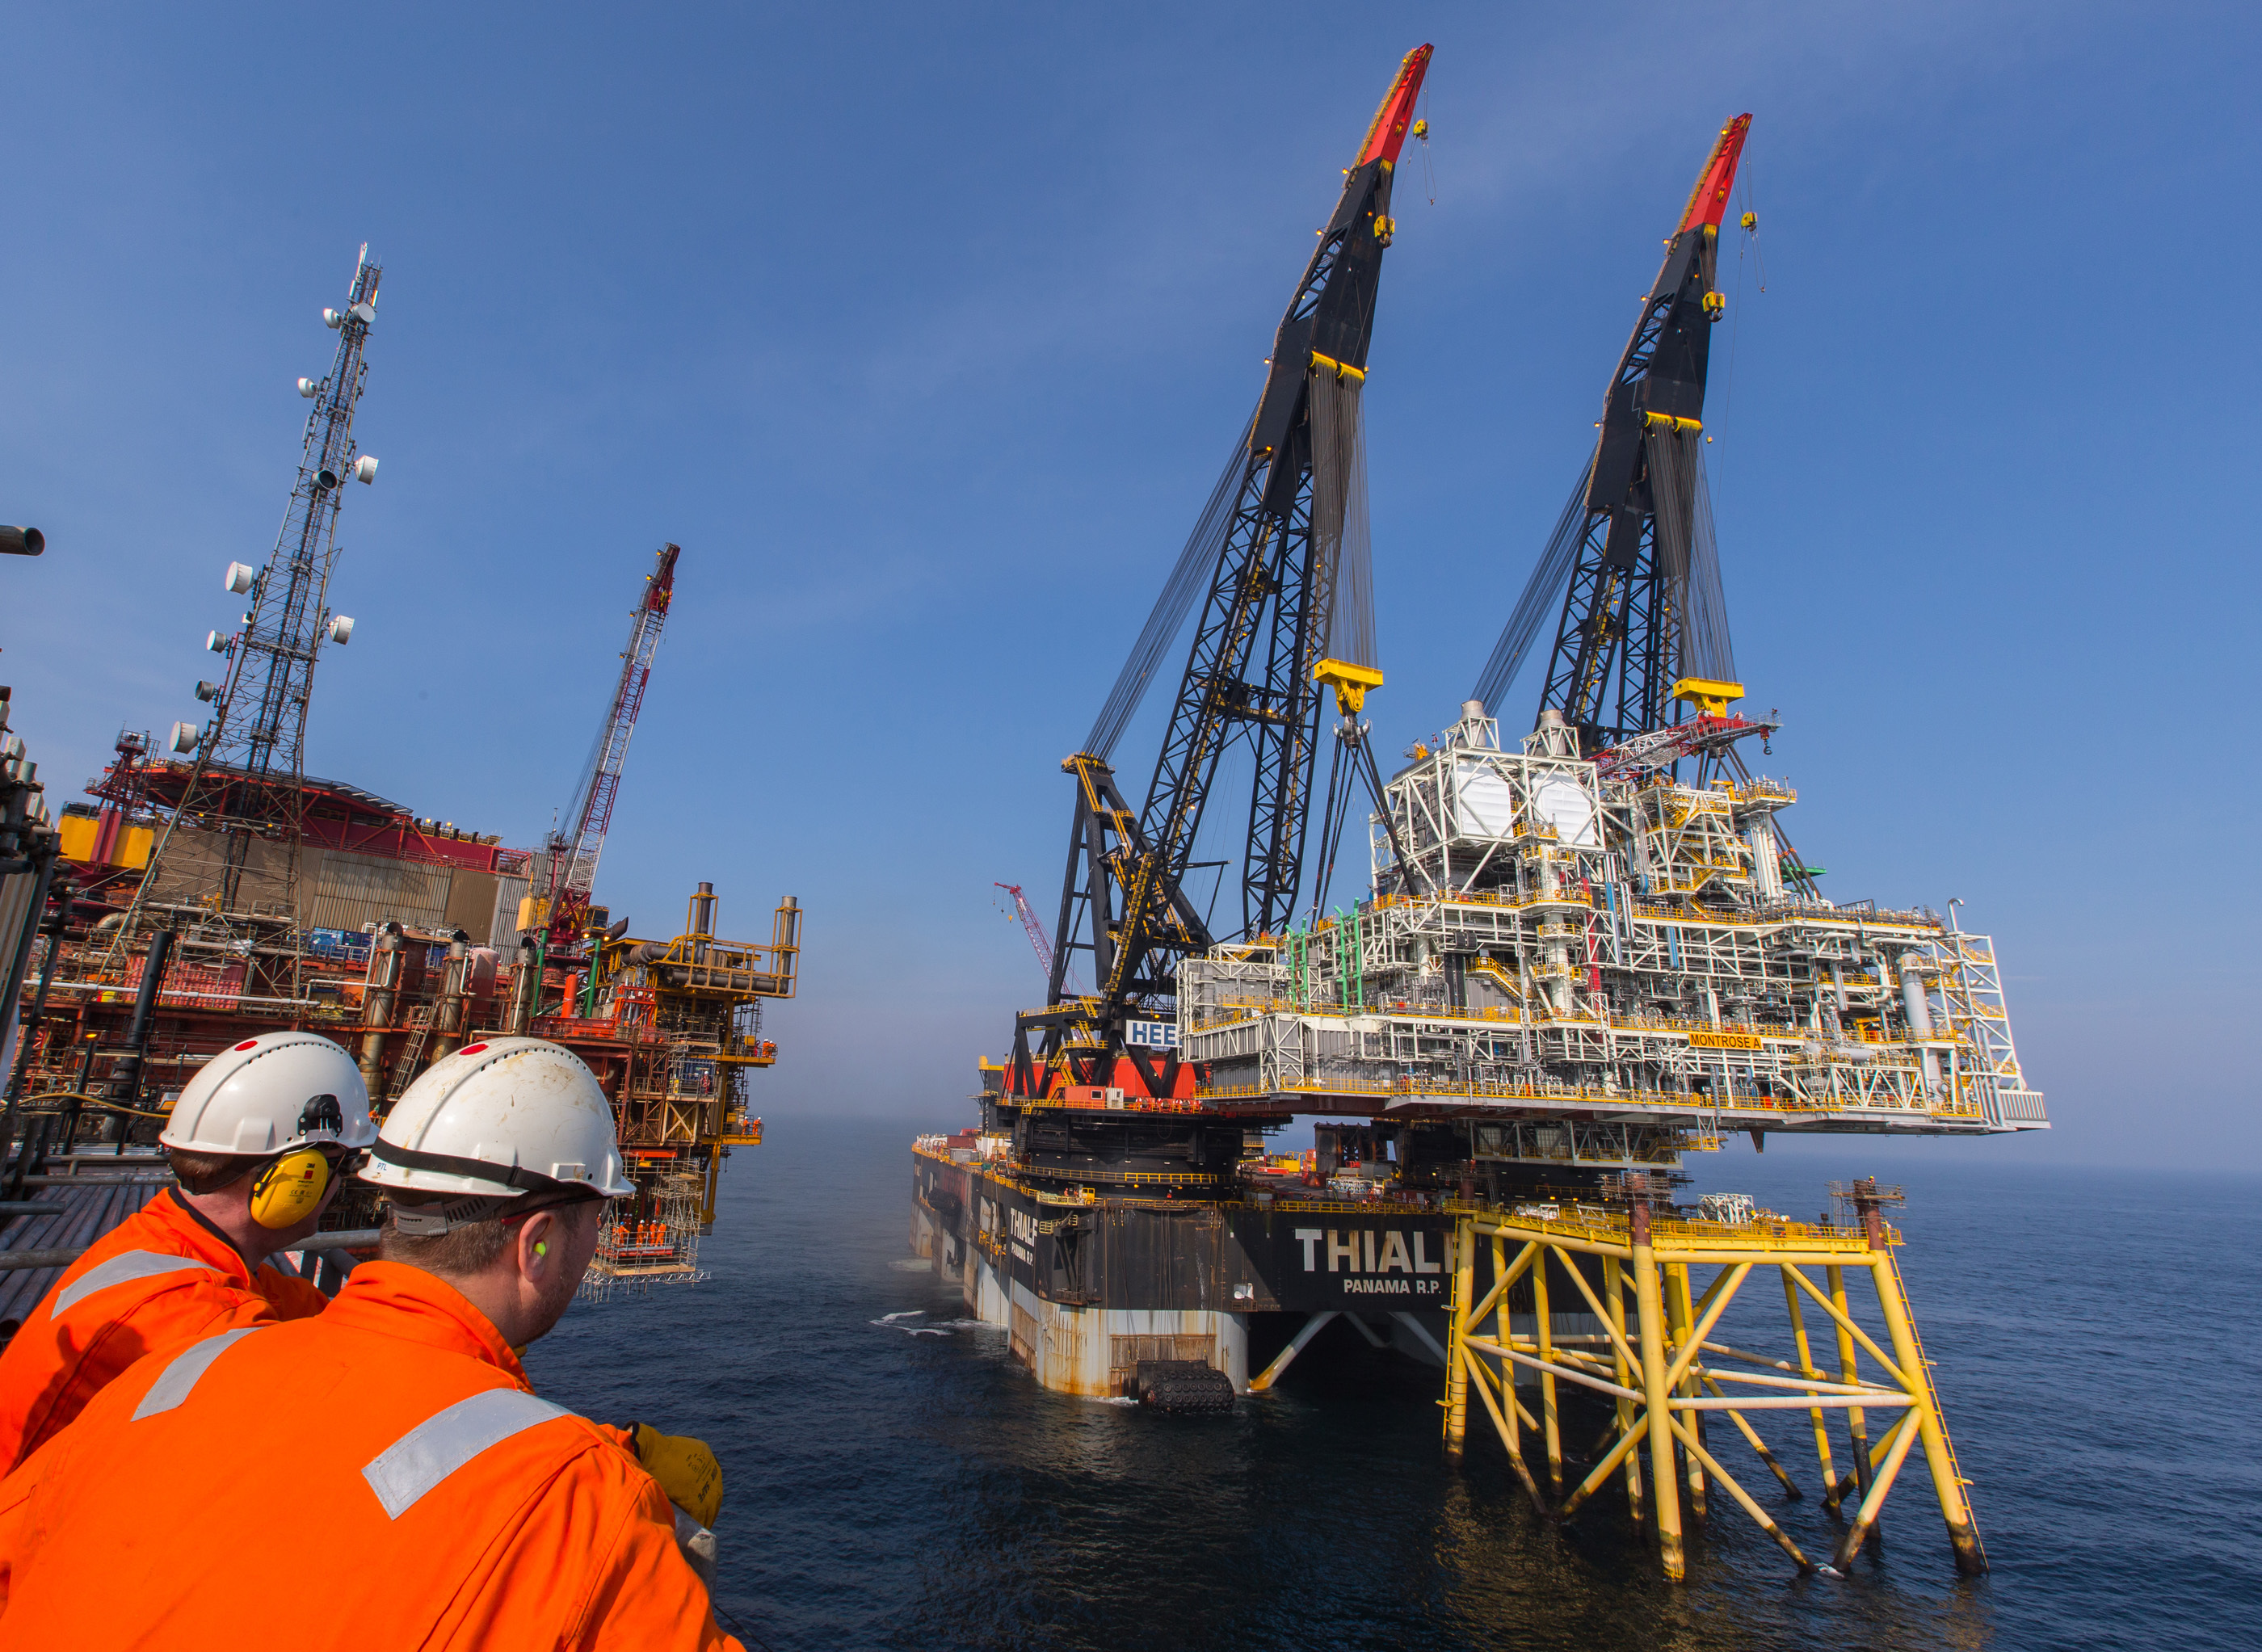 The new platform being installed in the North Sea.